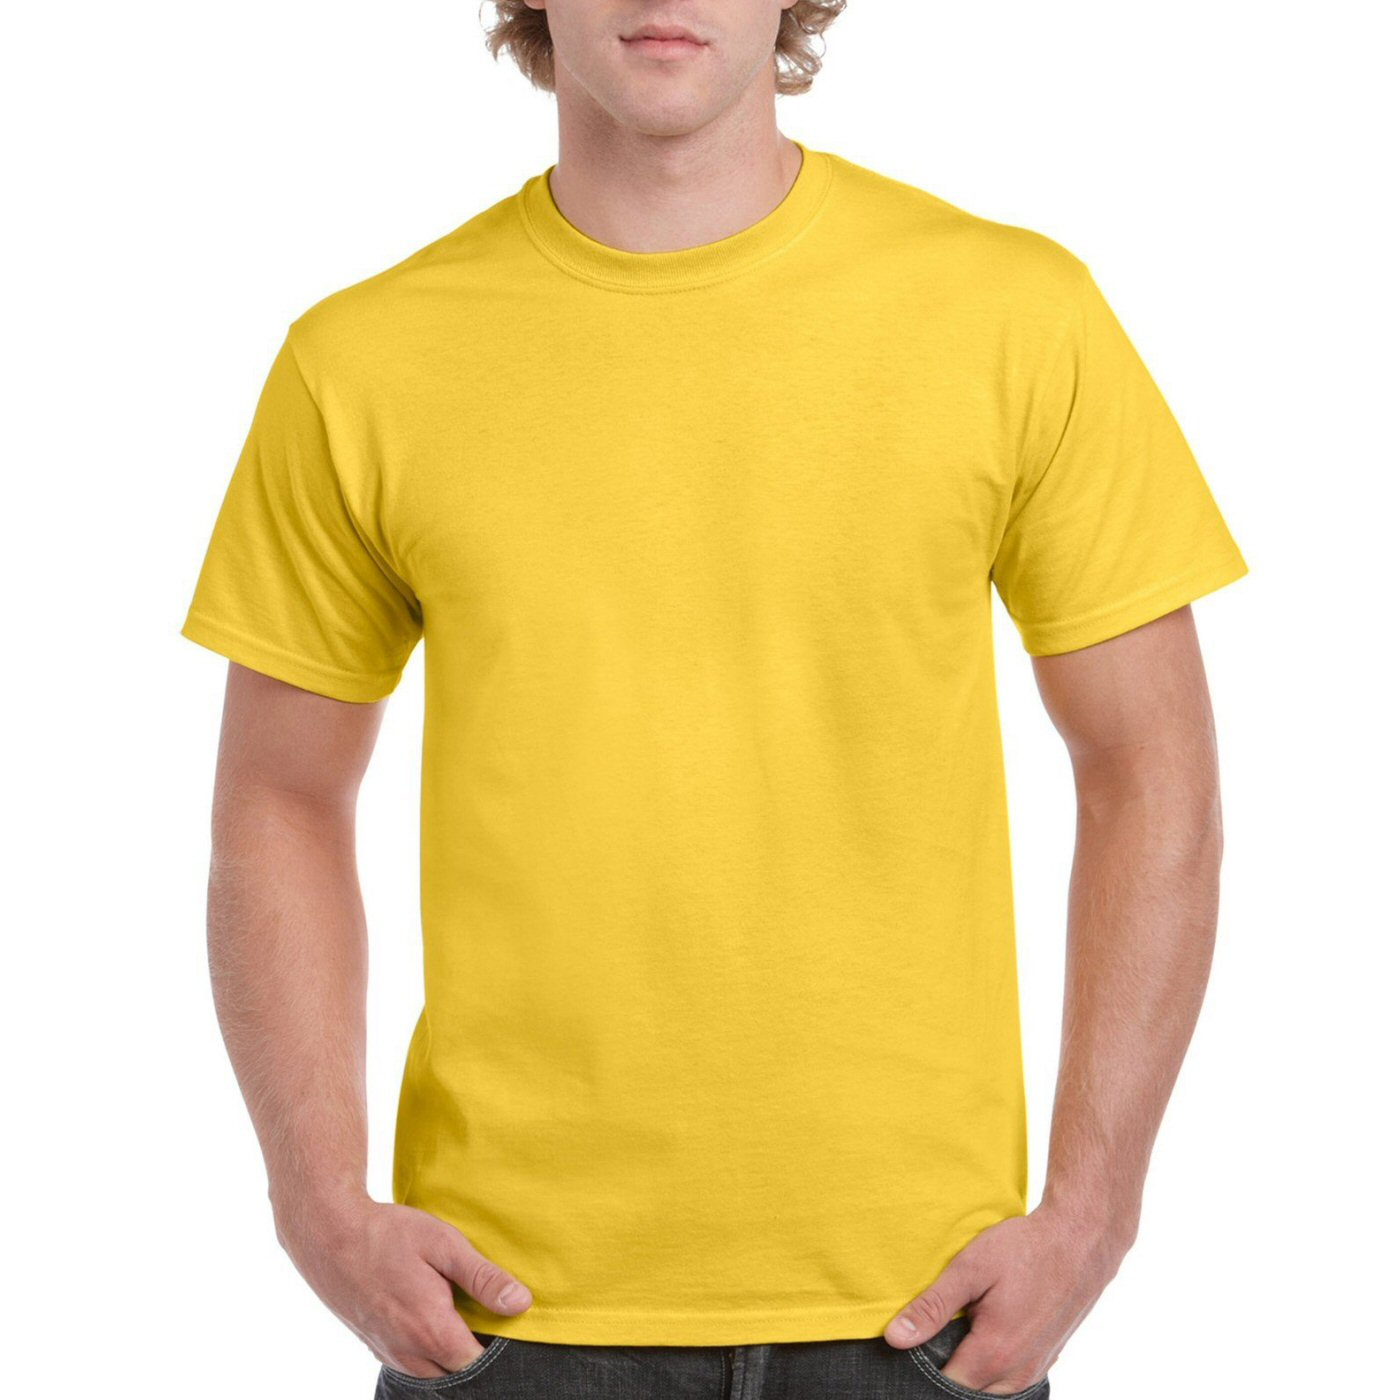 Plain t shirts for men buy plain t shirts online at low for Lowest price custom t shirts